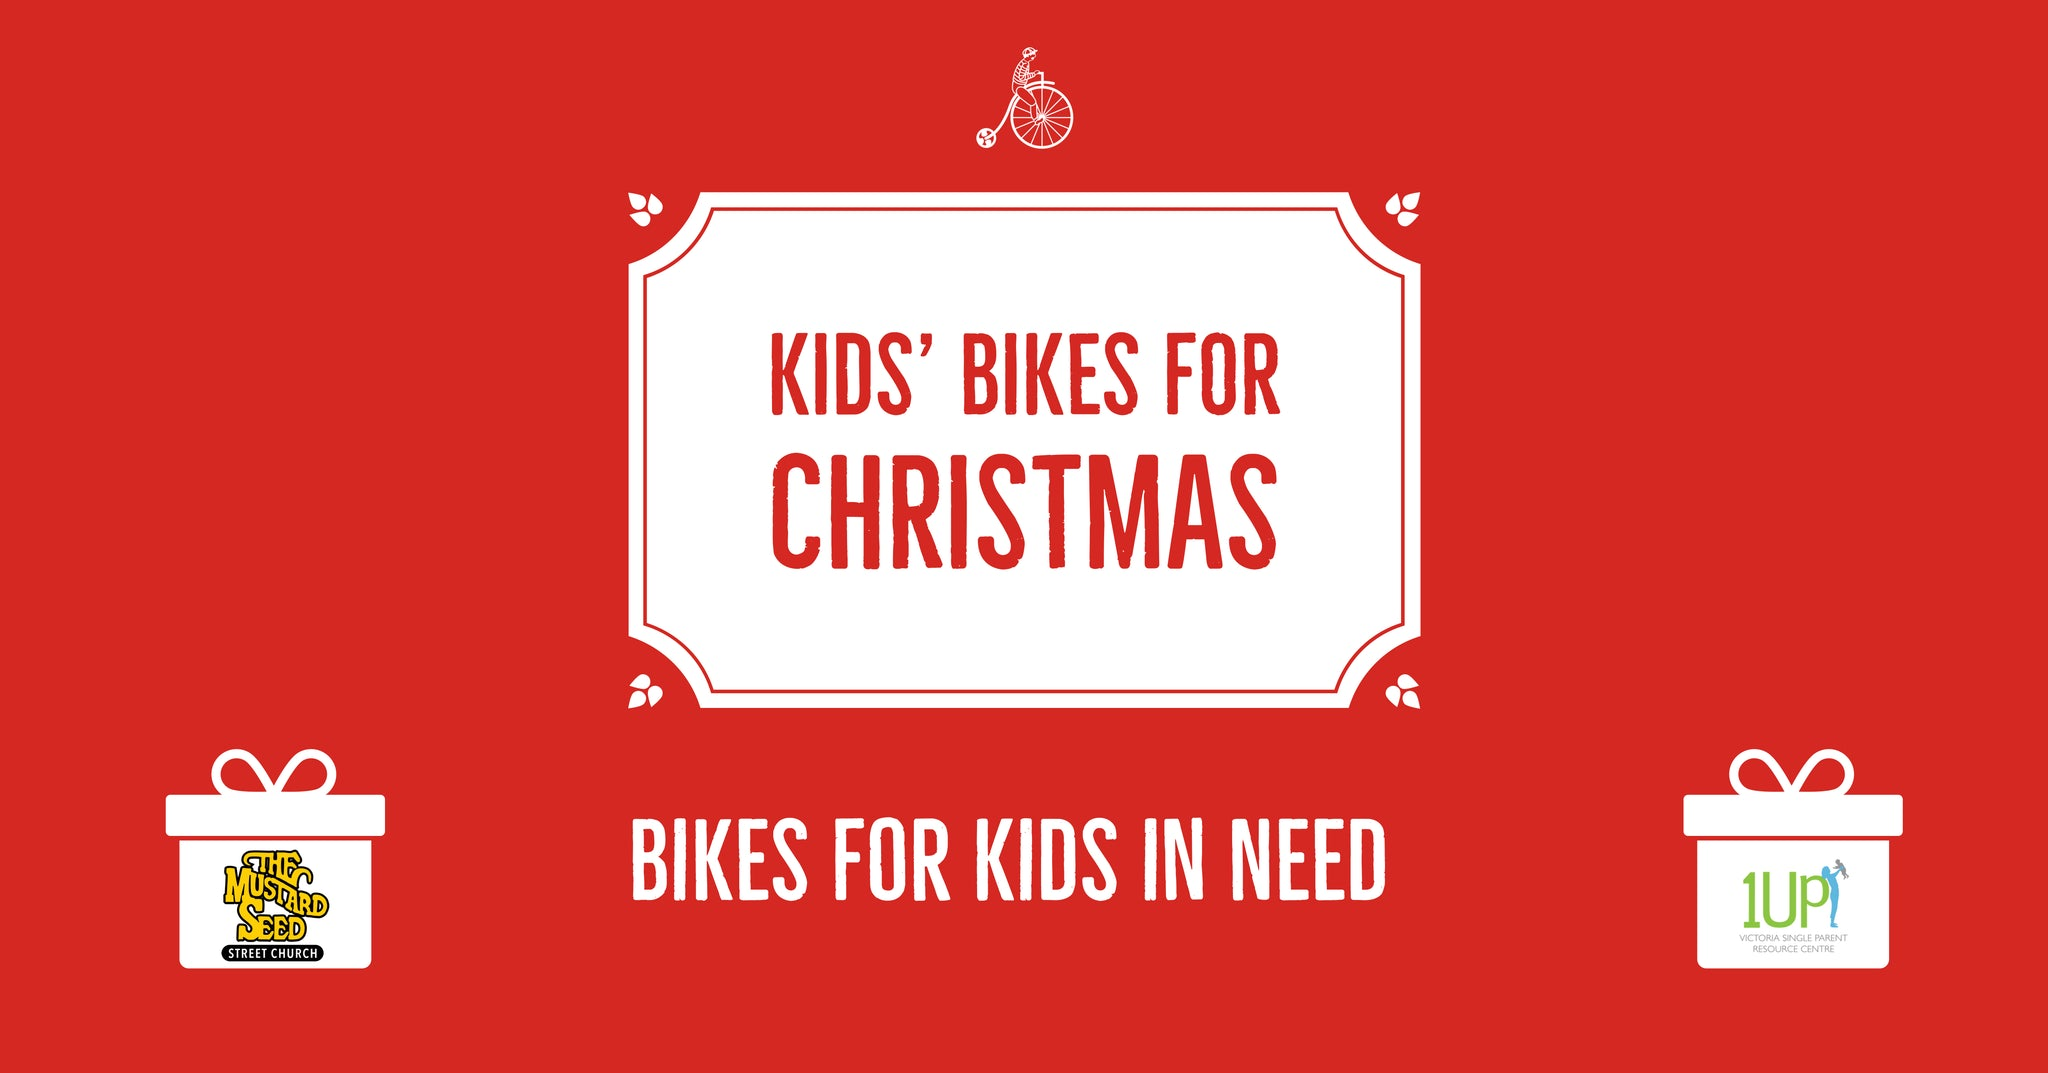 Kids' Bikes For Christmas